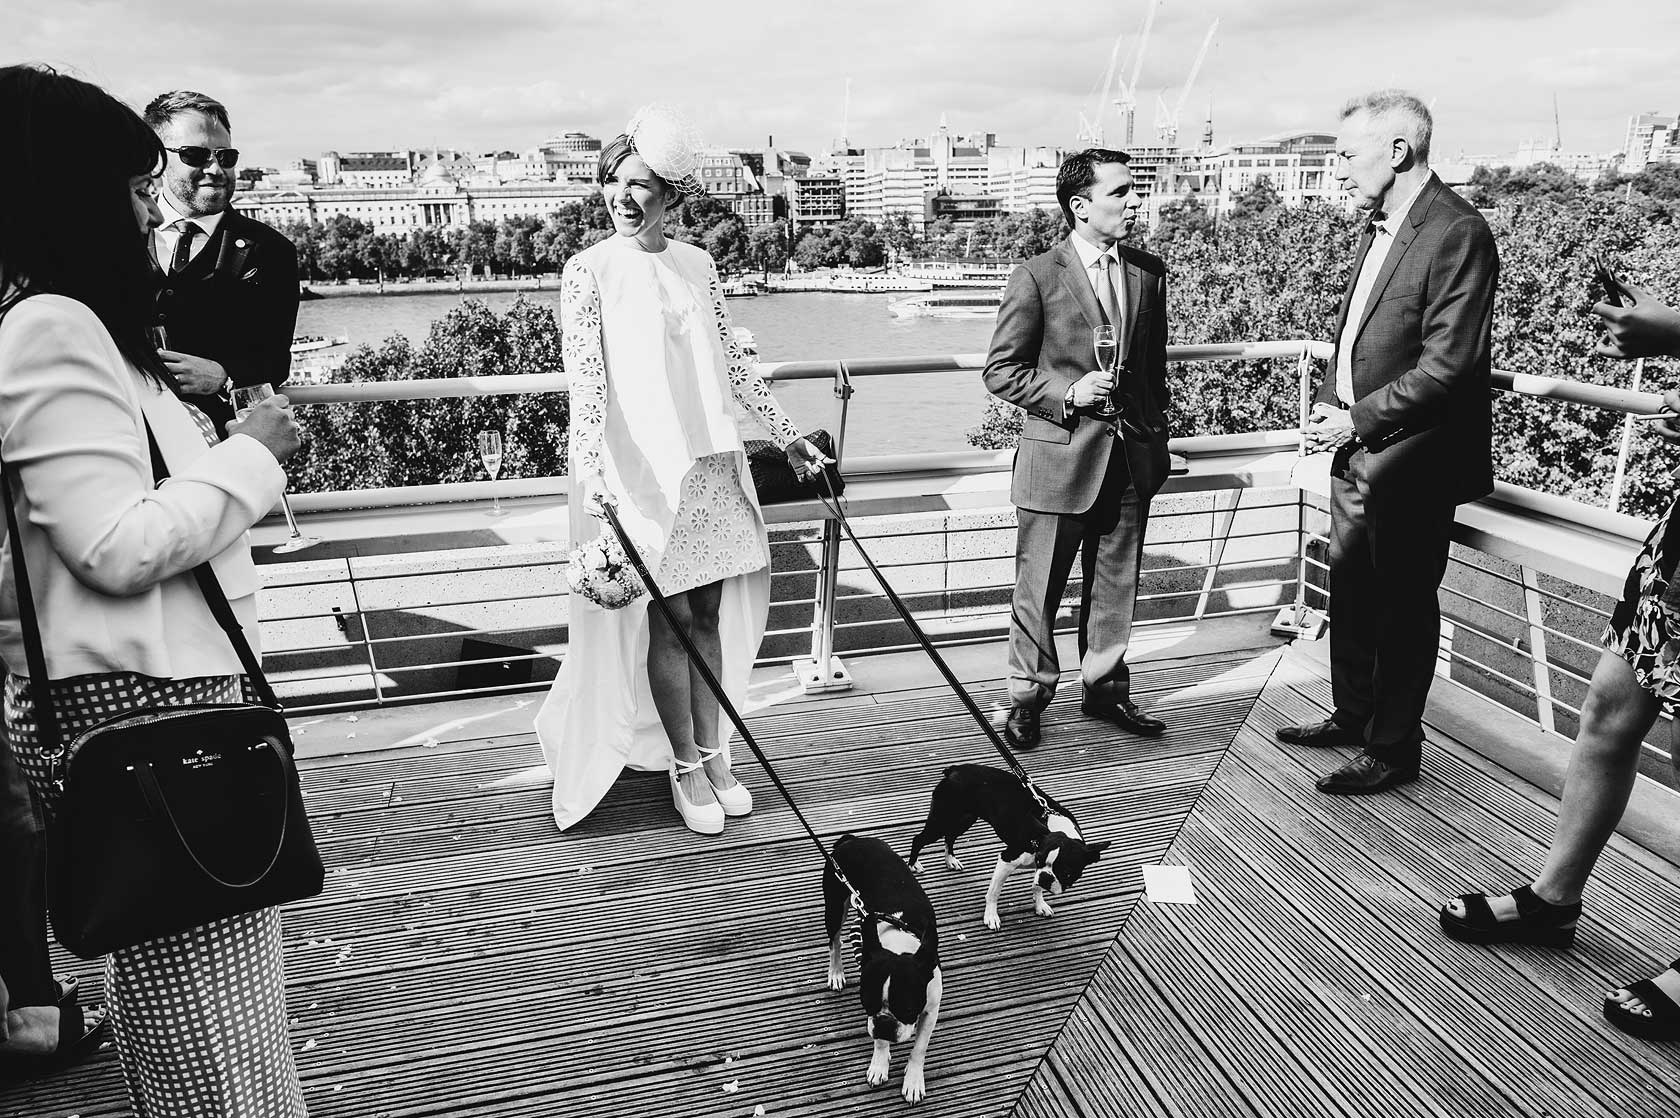 Reportage Wedding Photography at National Theatre